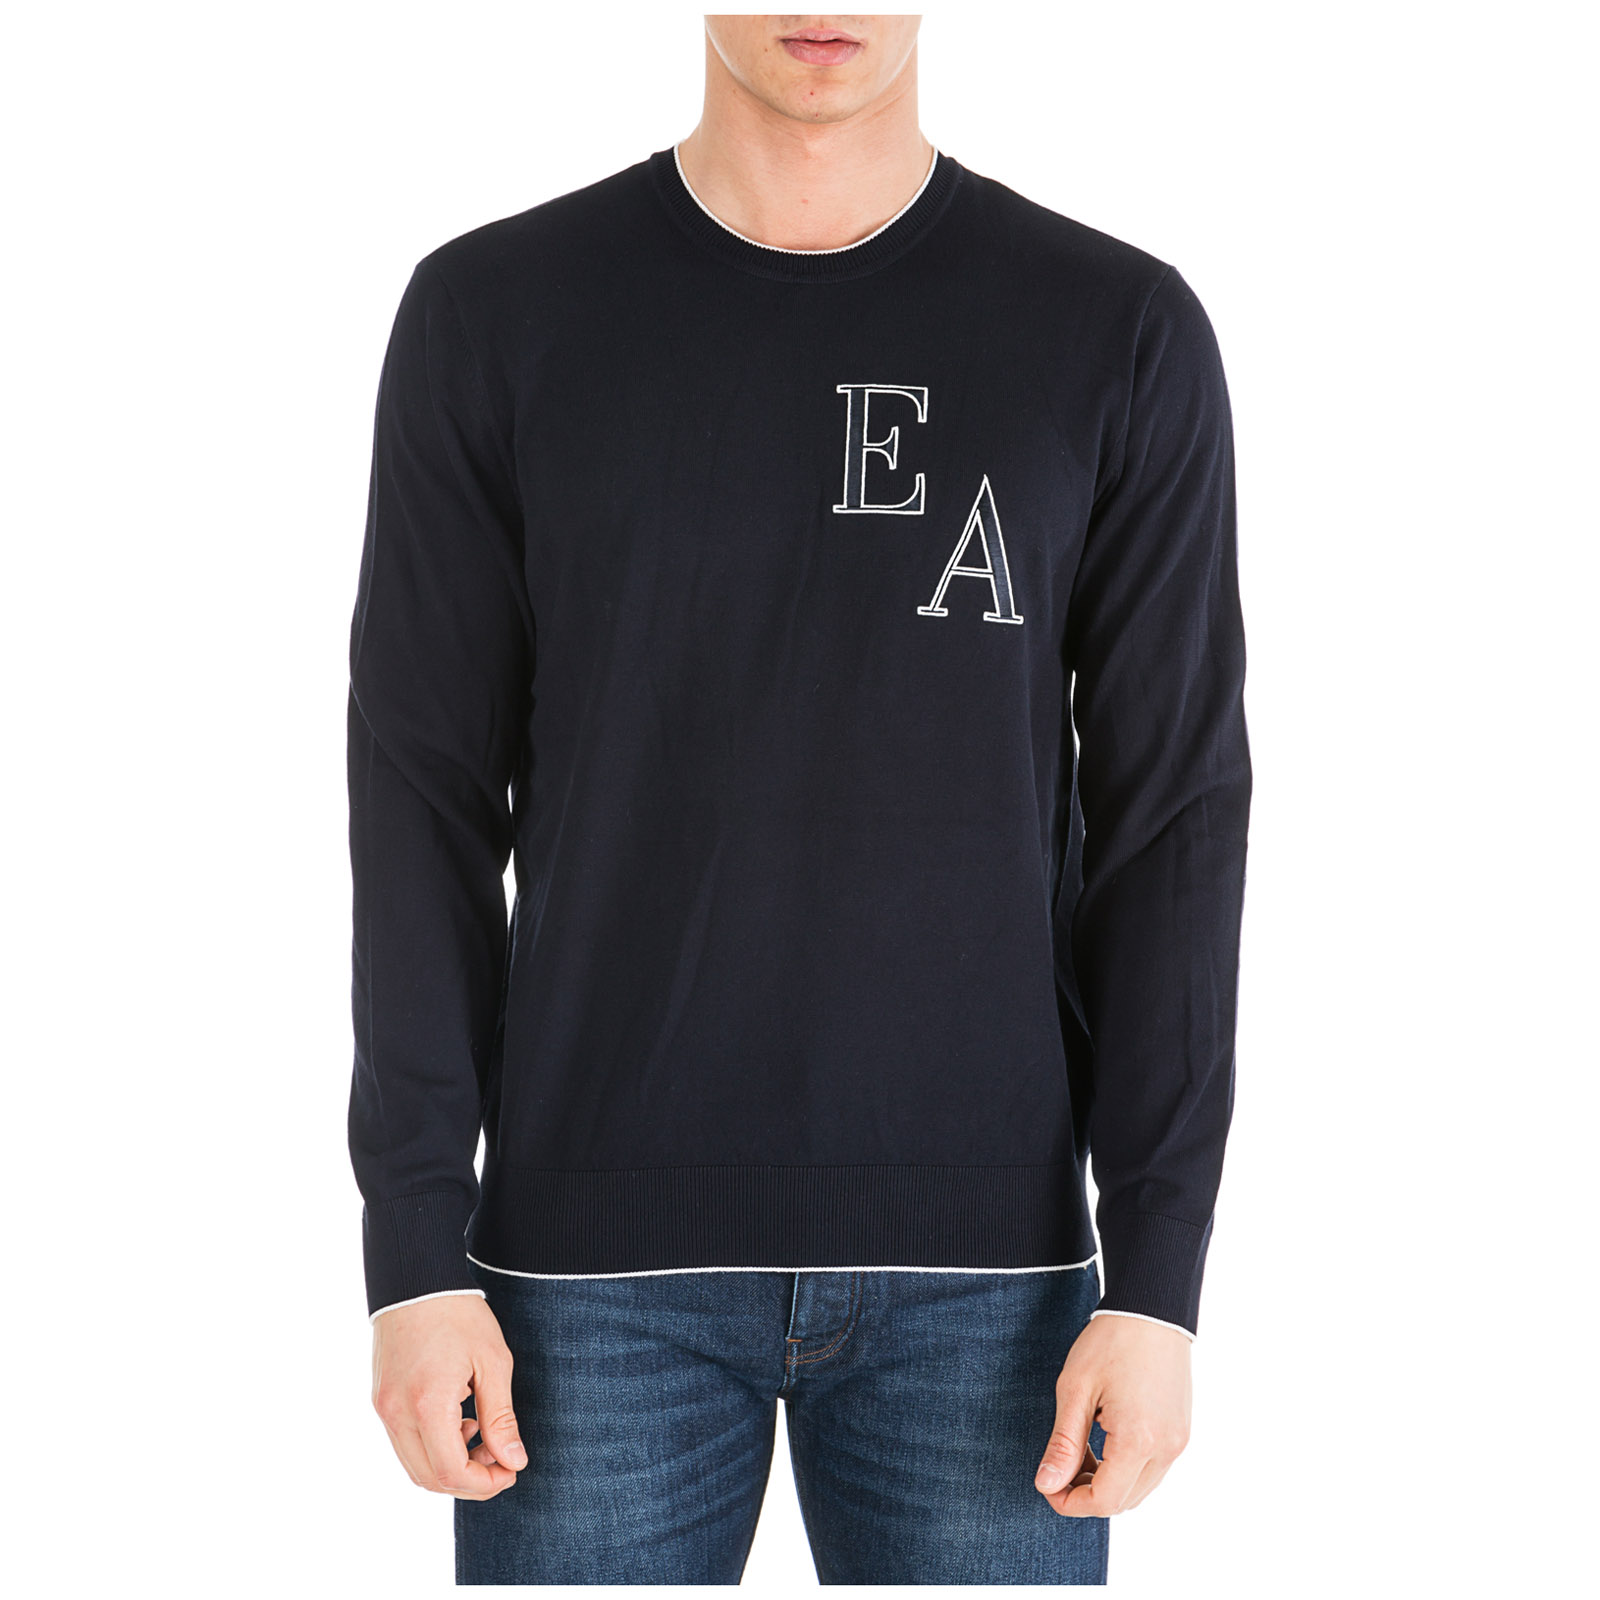 selezione migliore 2f287 947d5 Men's crew neck neckline jumper sweater pullover regular fit